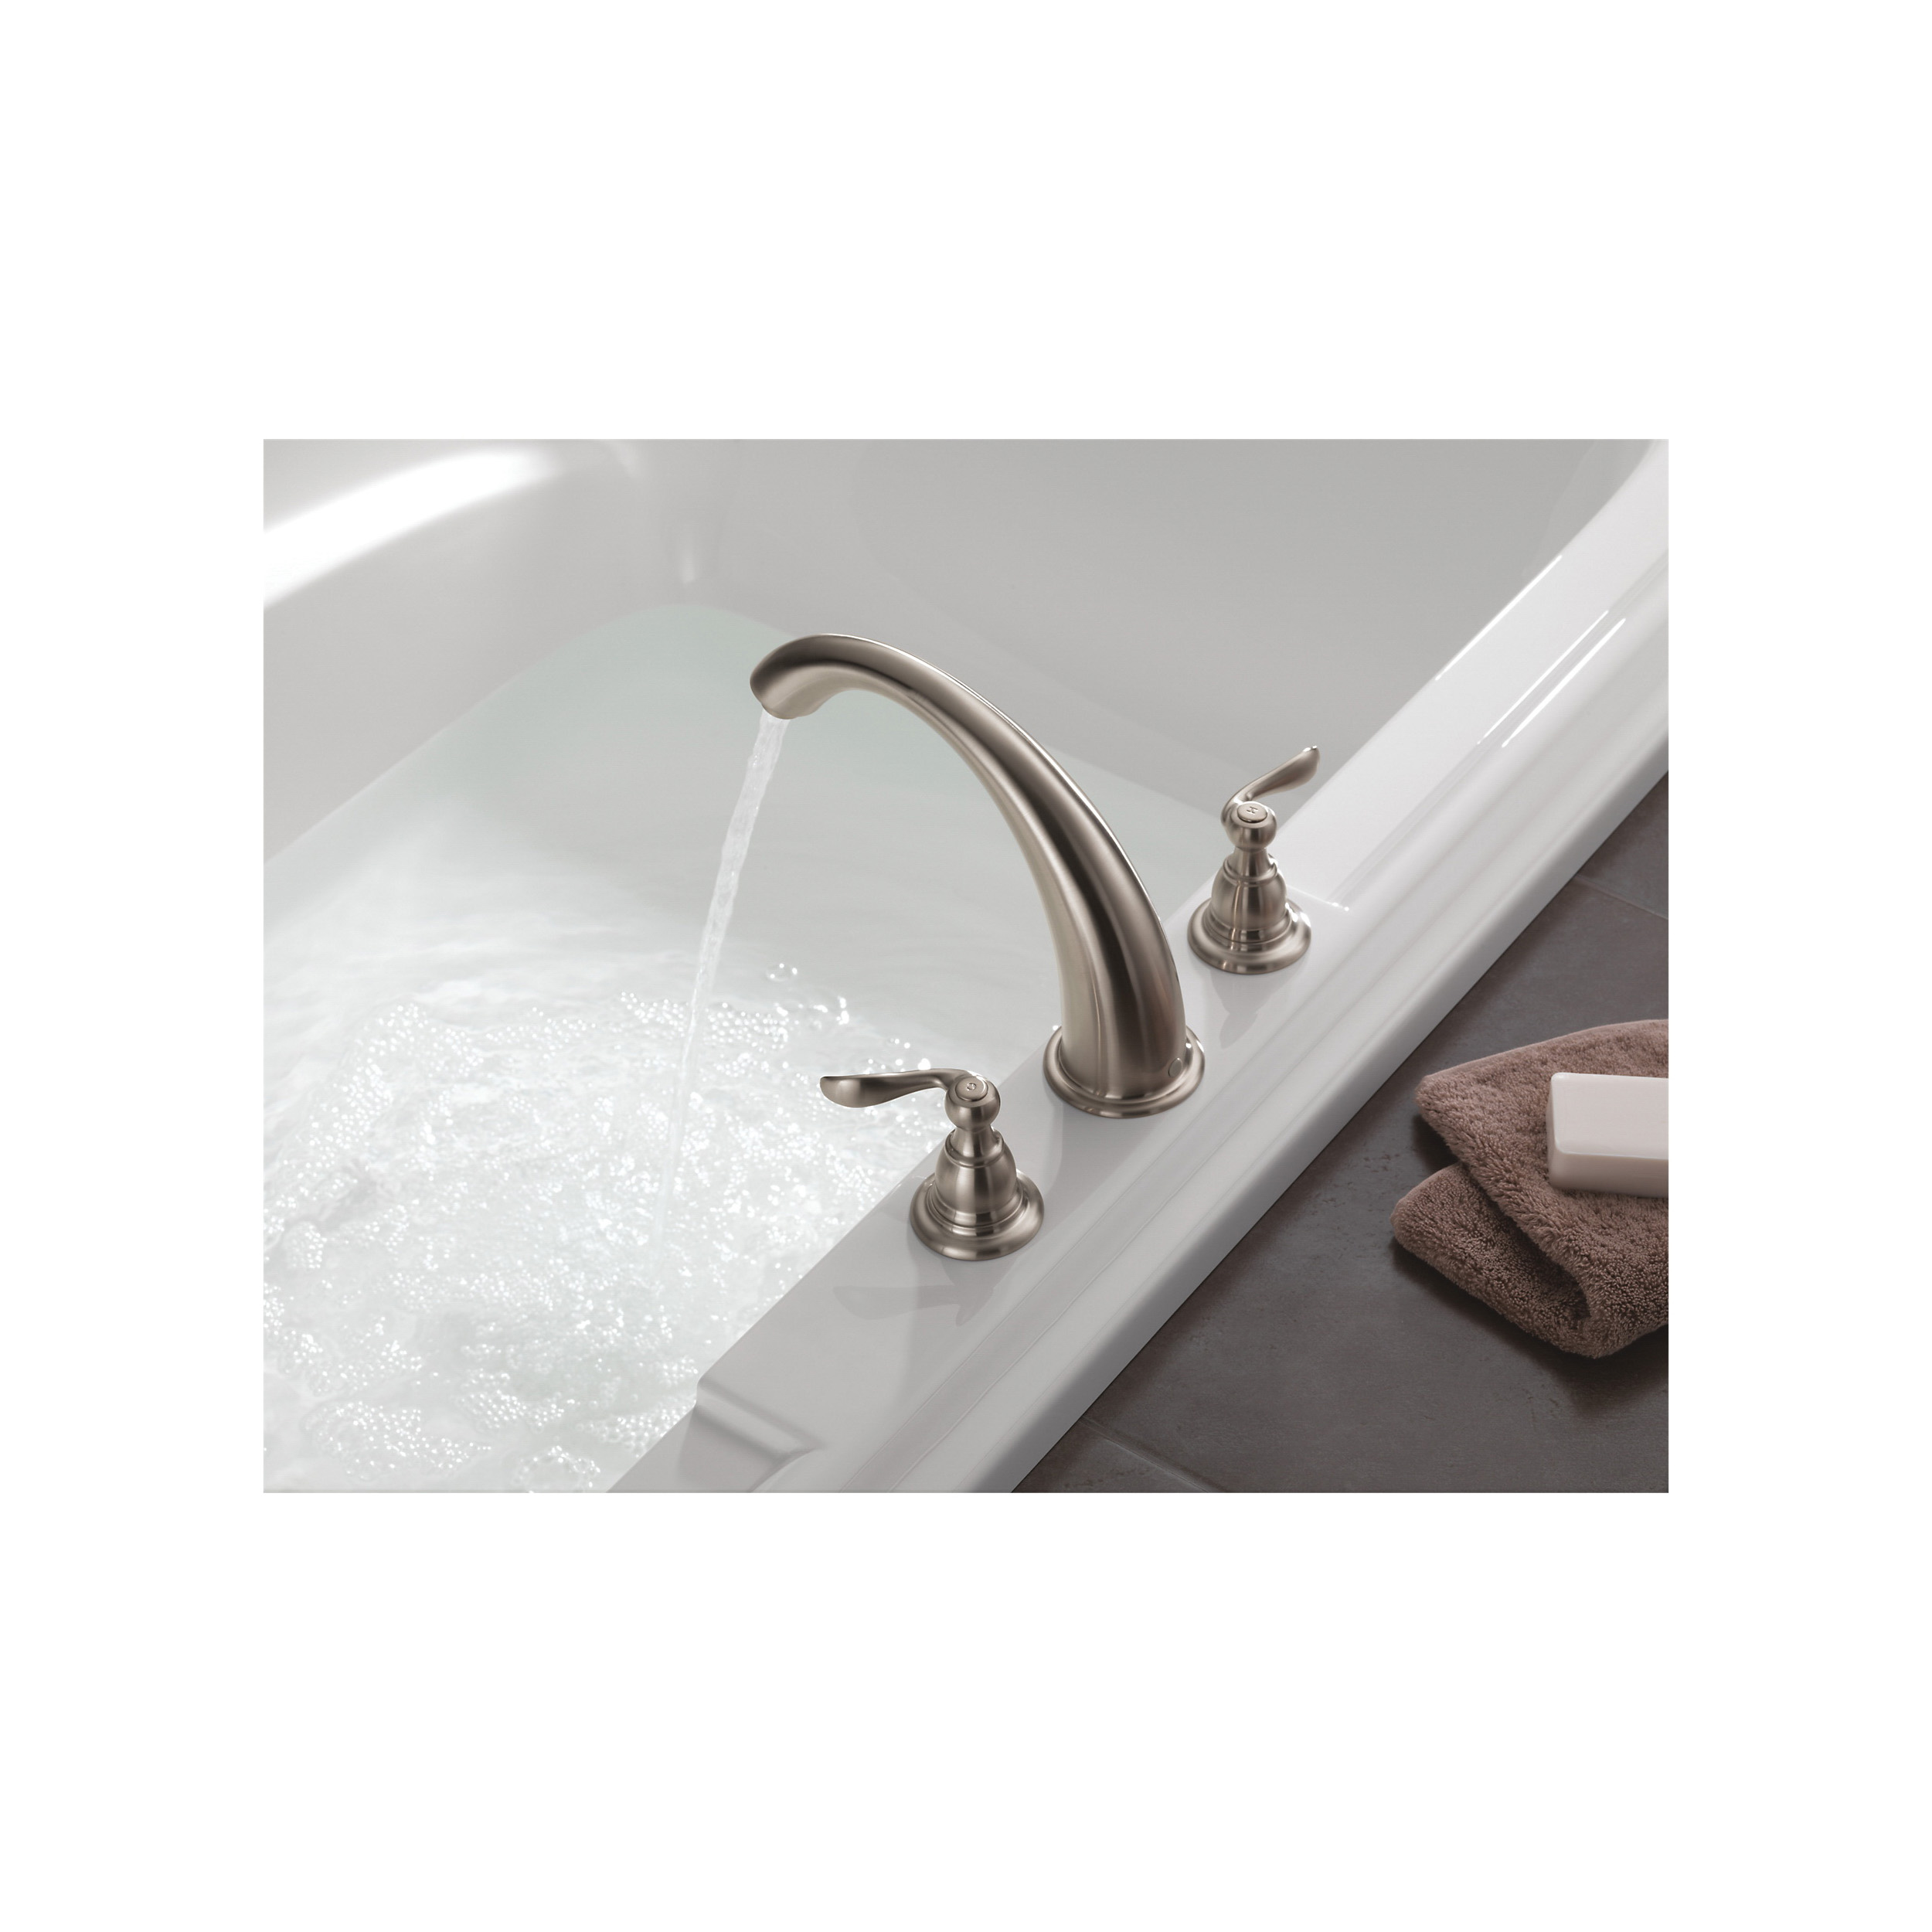 DELTA® BT2796-SS Roman Tub Trim, Windemere®, 18 gpm, 8 to 16 in Center, Stainless Steel, 2 Handles, Function: Traditional, Hand Shower Yes/No: No, Import